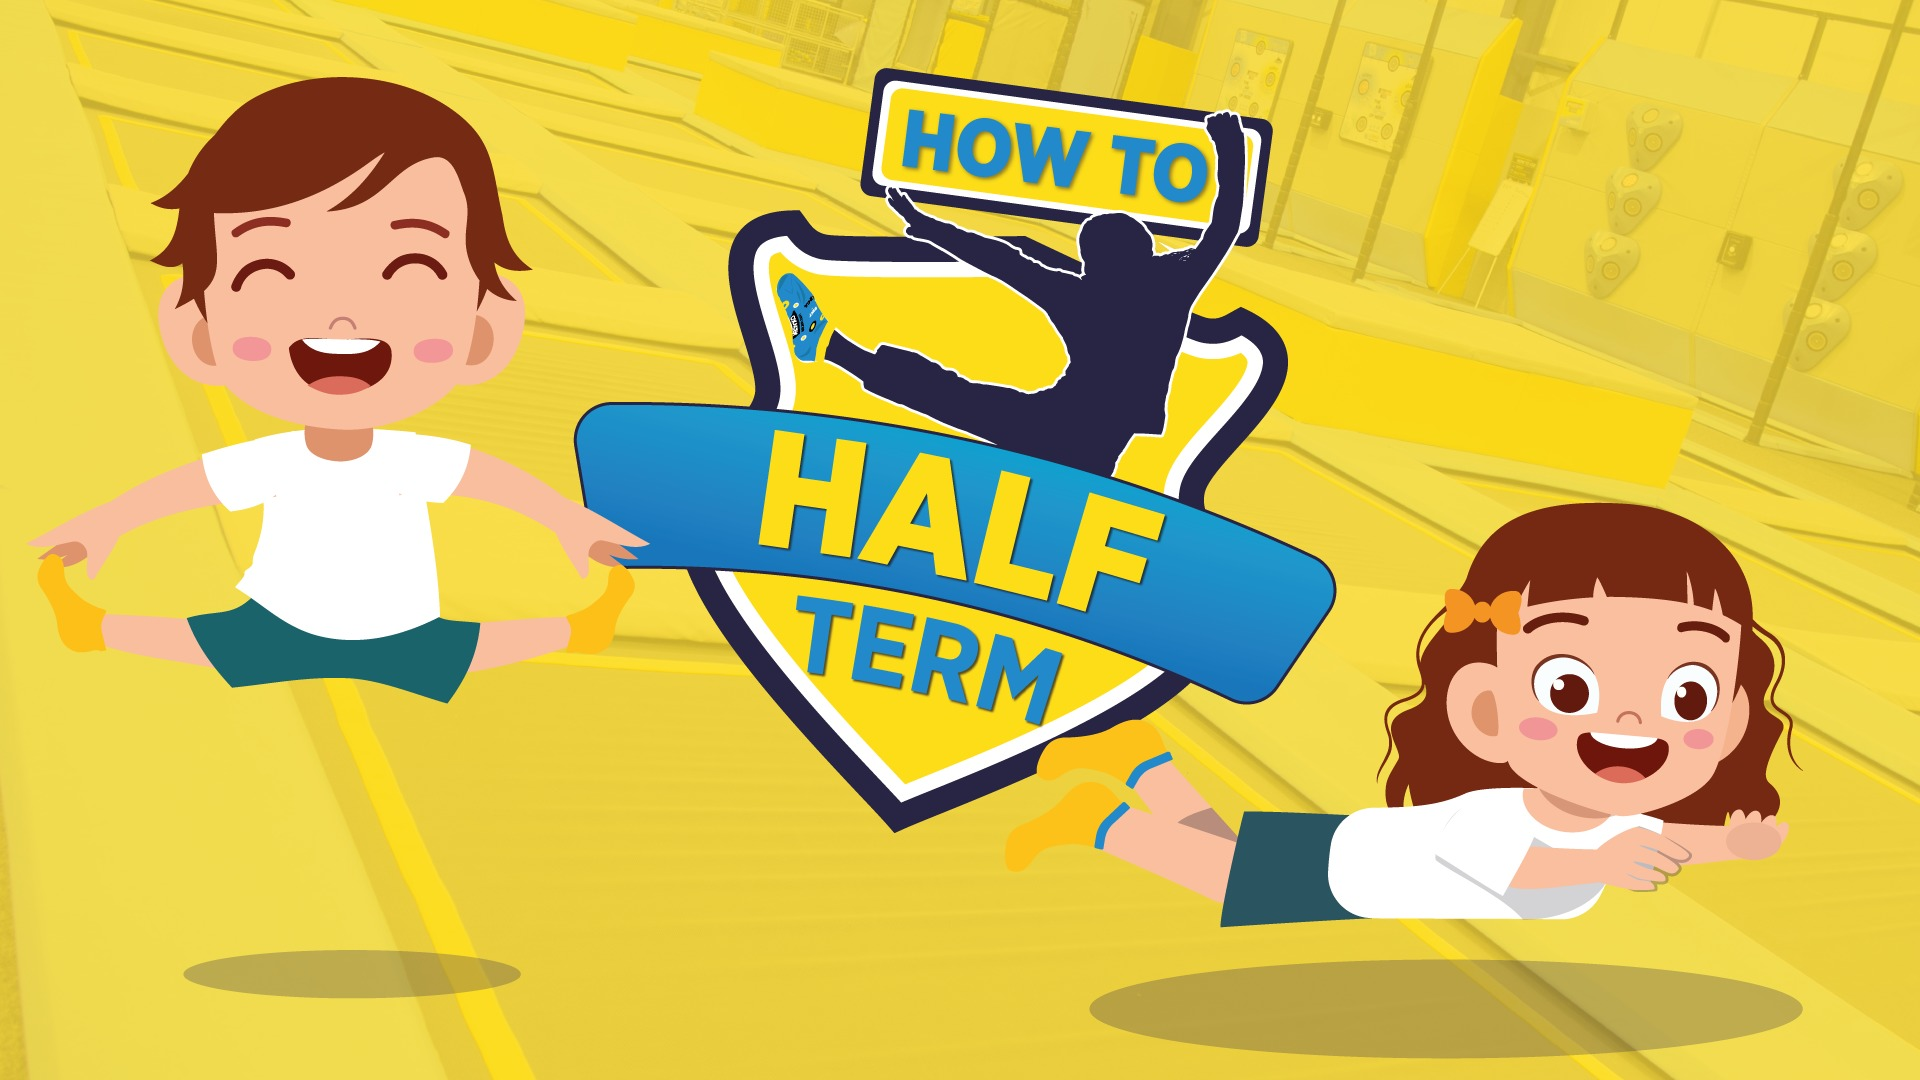 How to Half Term